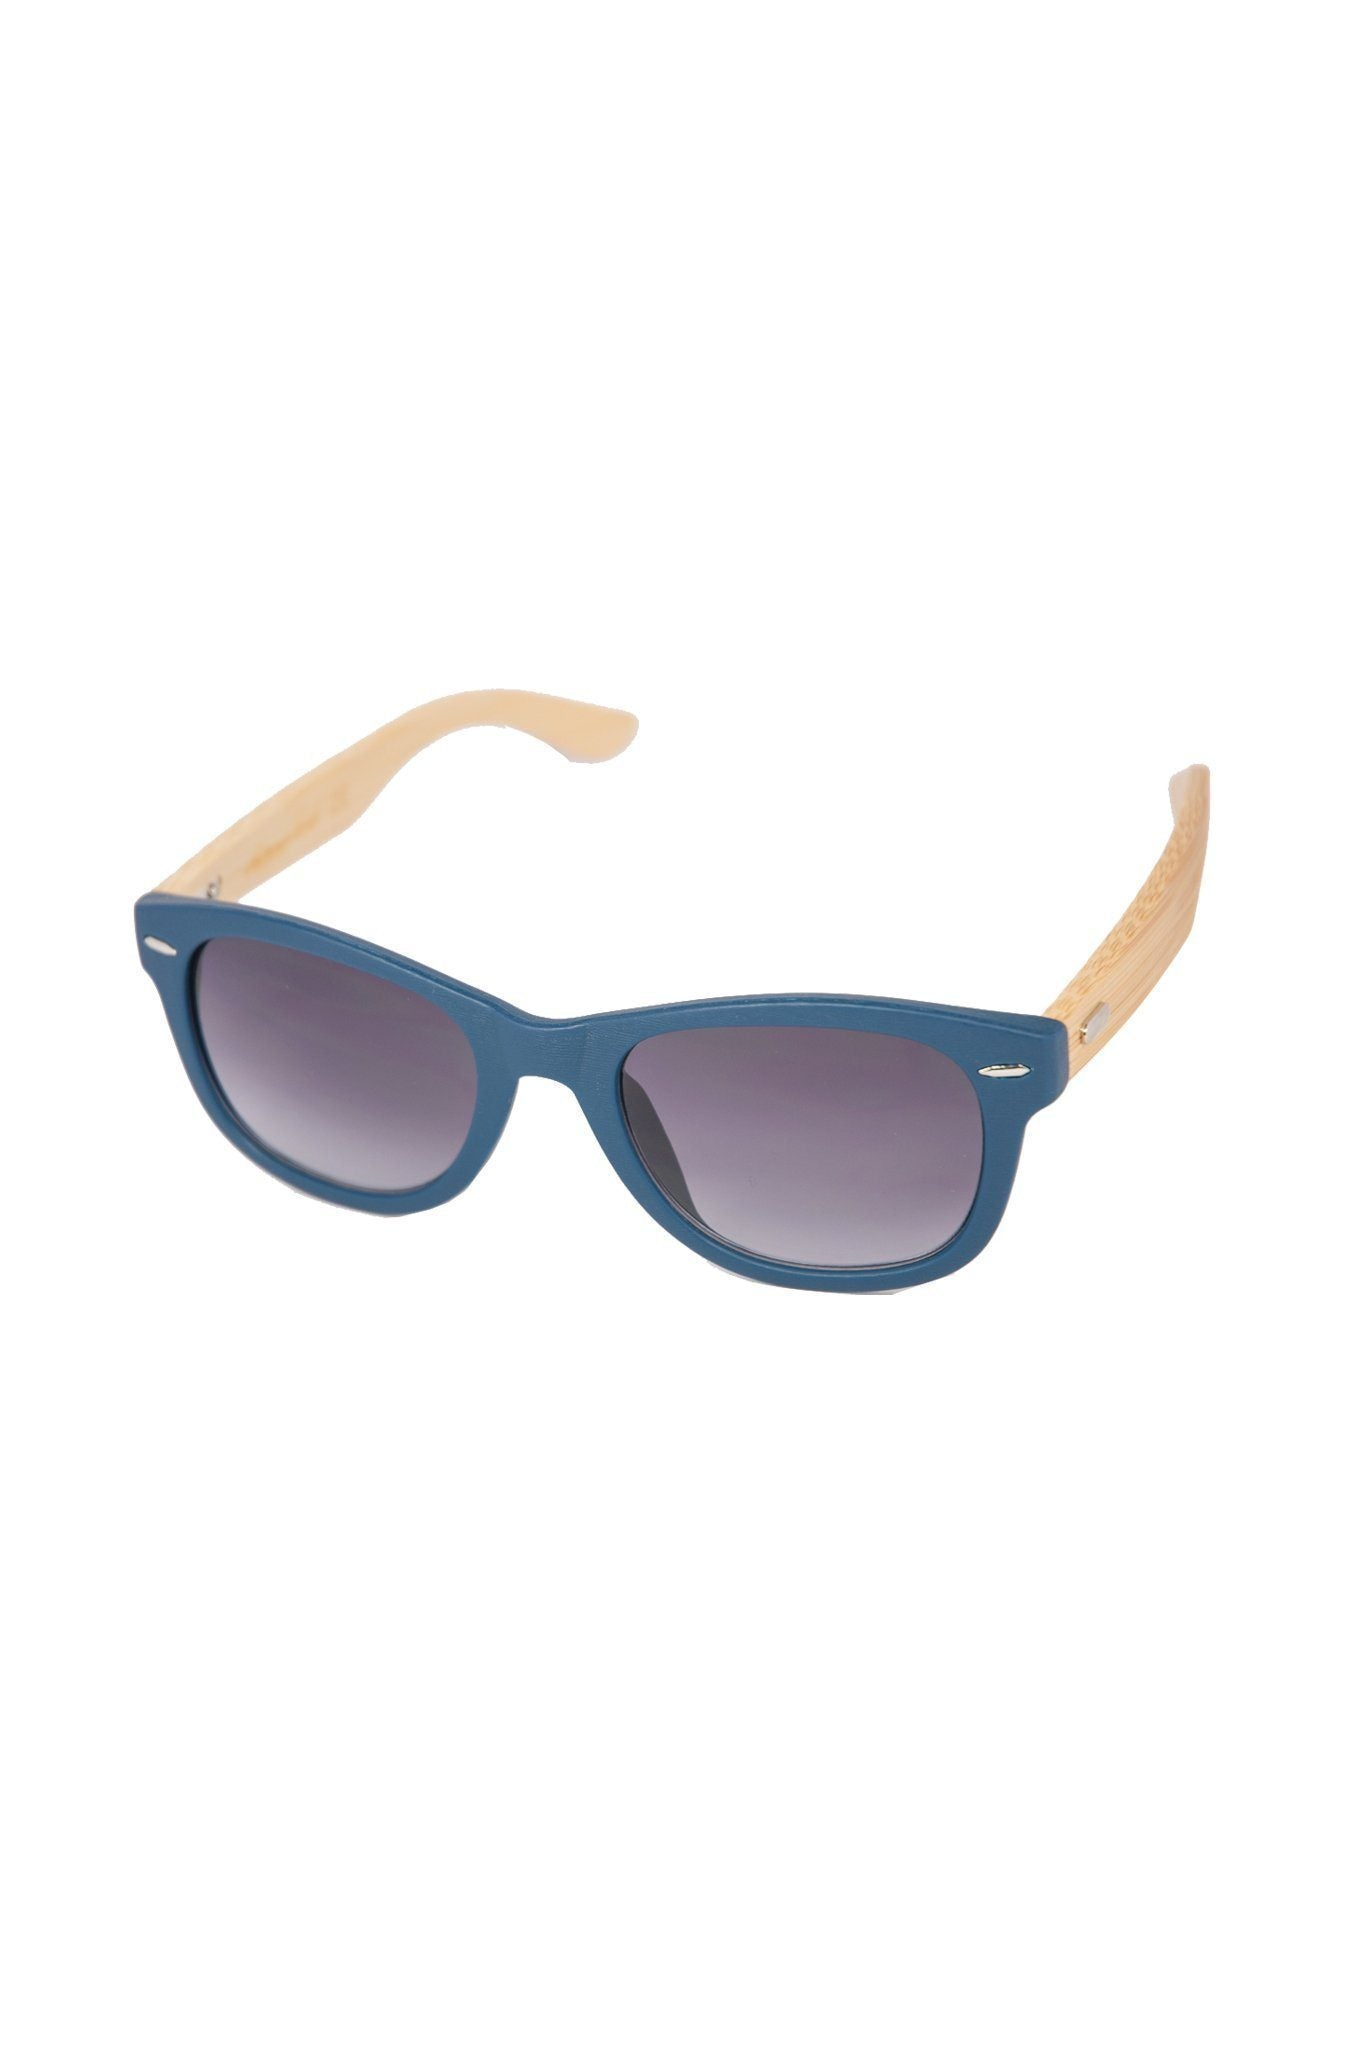 Trento Blue Sunglasses - Komodo Fashion